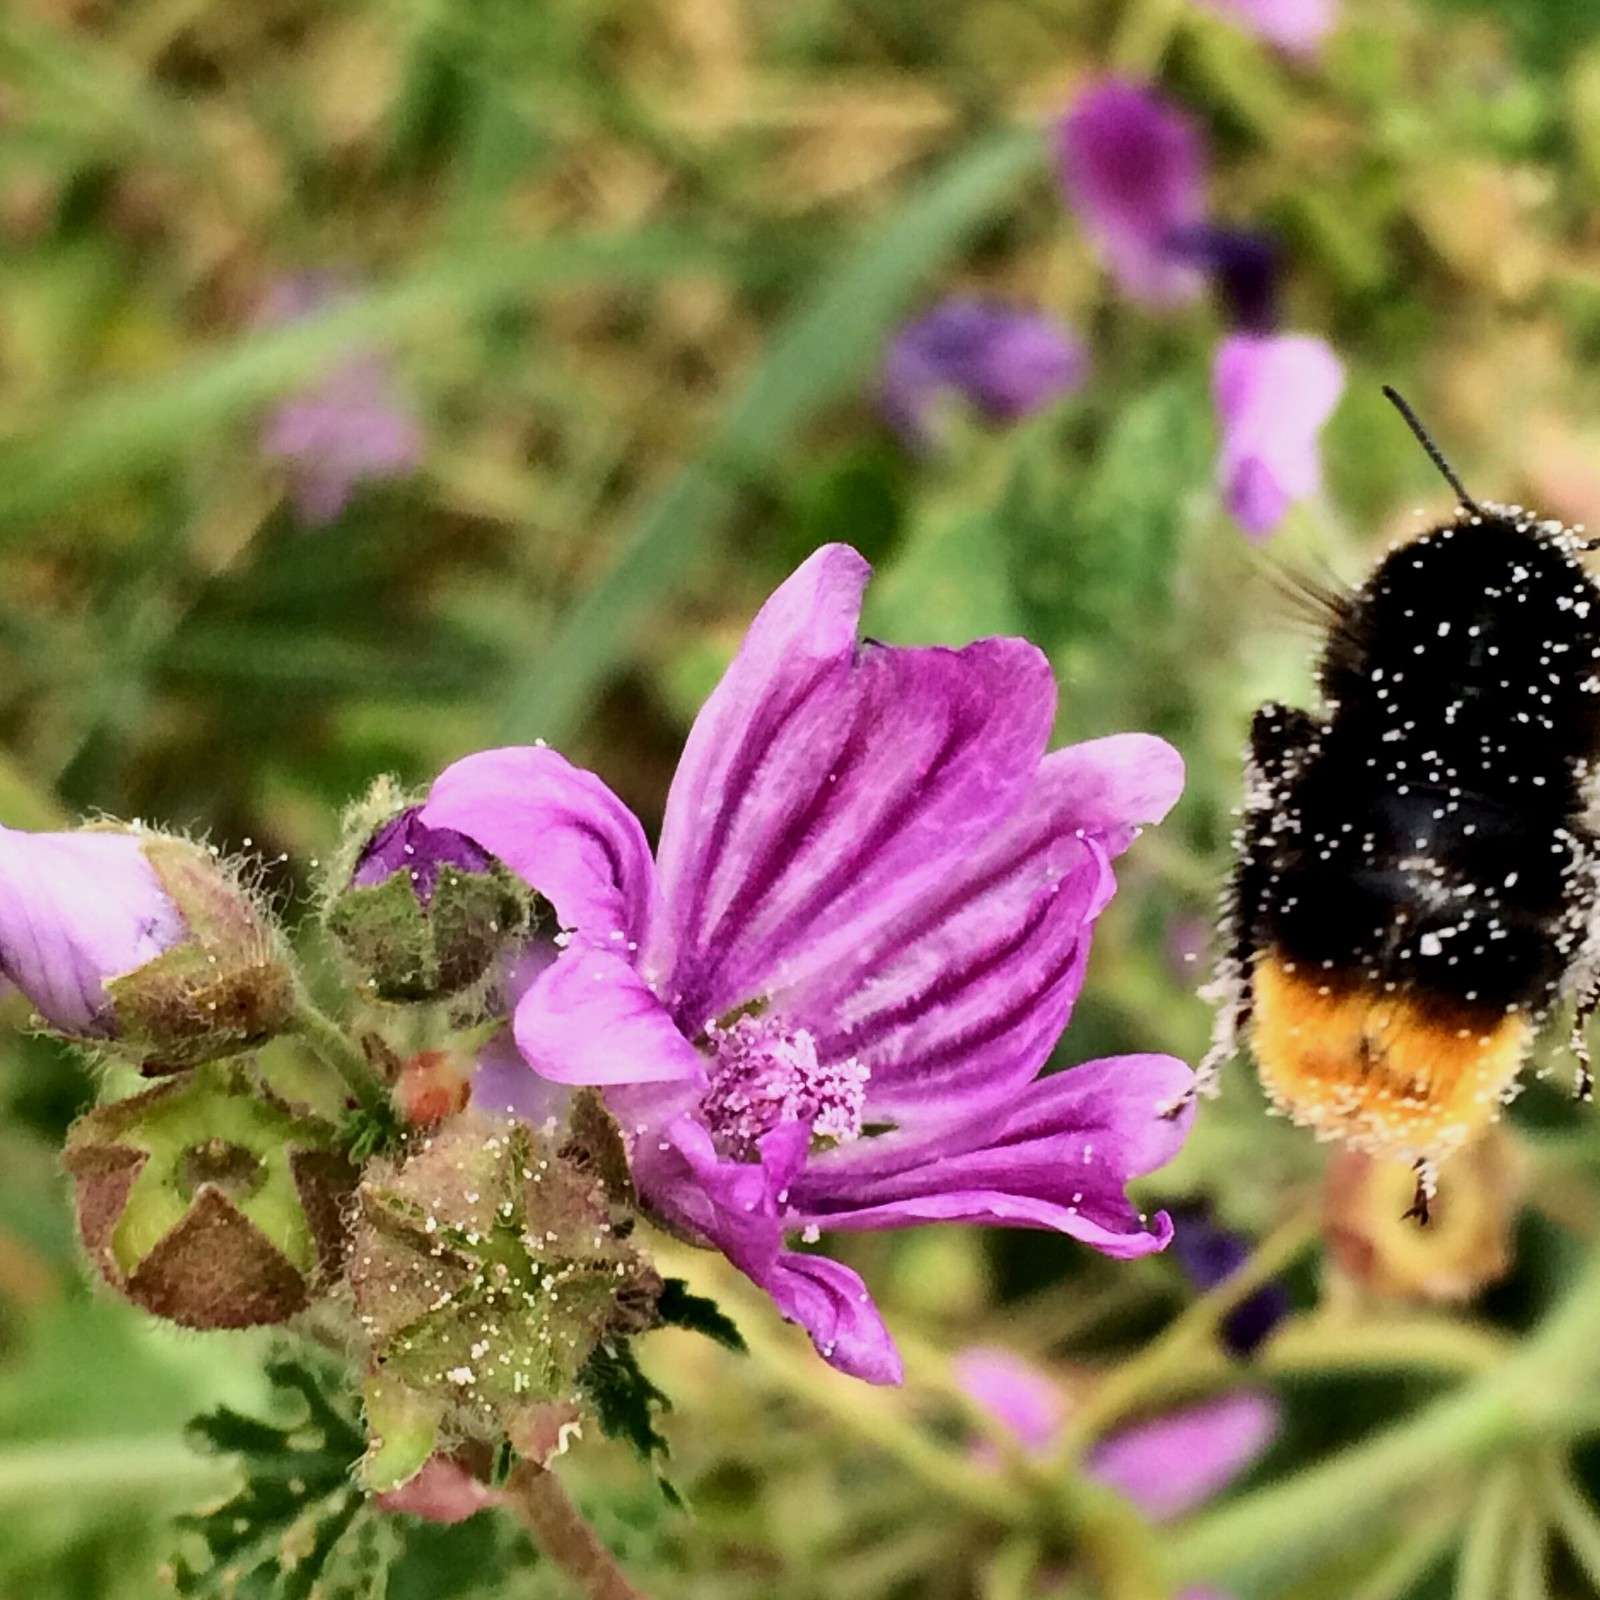 July 1, 2018: Southbourne to Chichester Pollen-covered bee flying away from a flower. #saveourbees